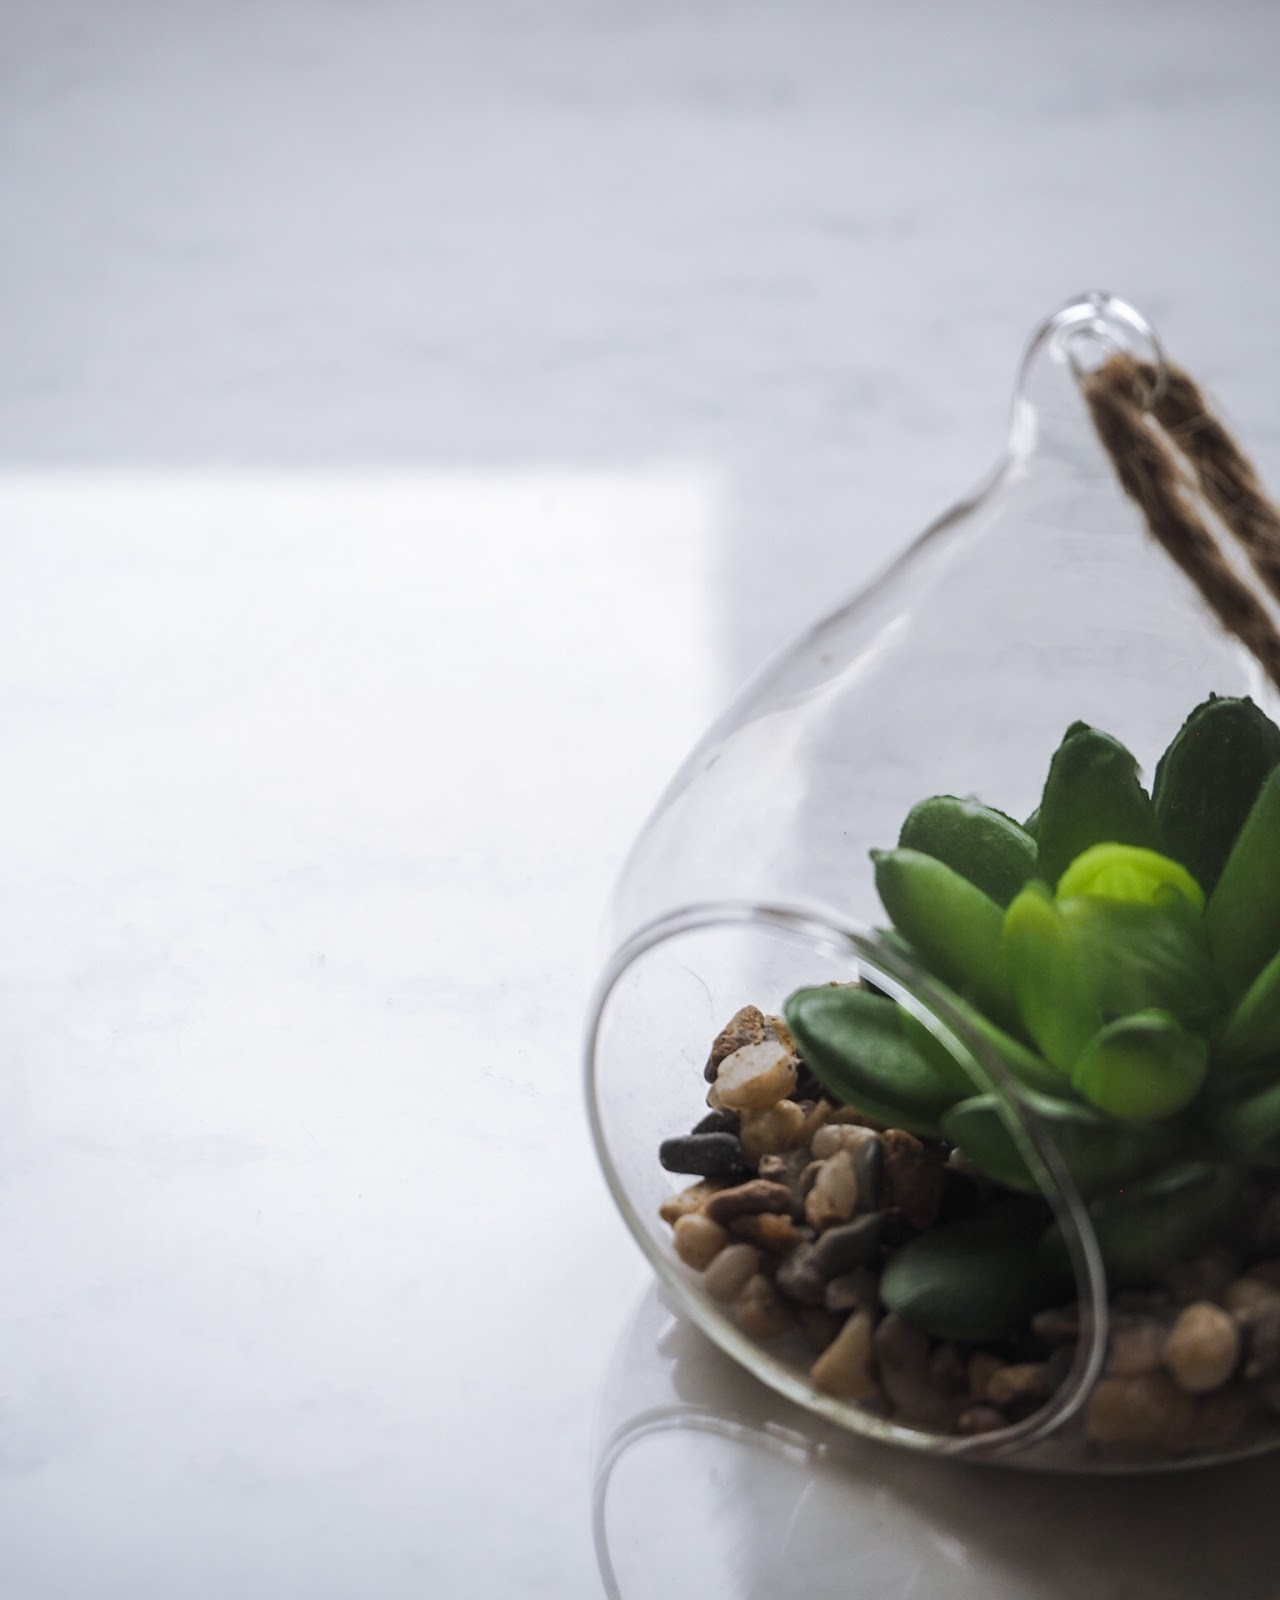 Small Succulent Plant